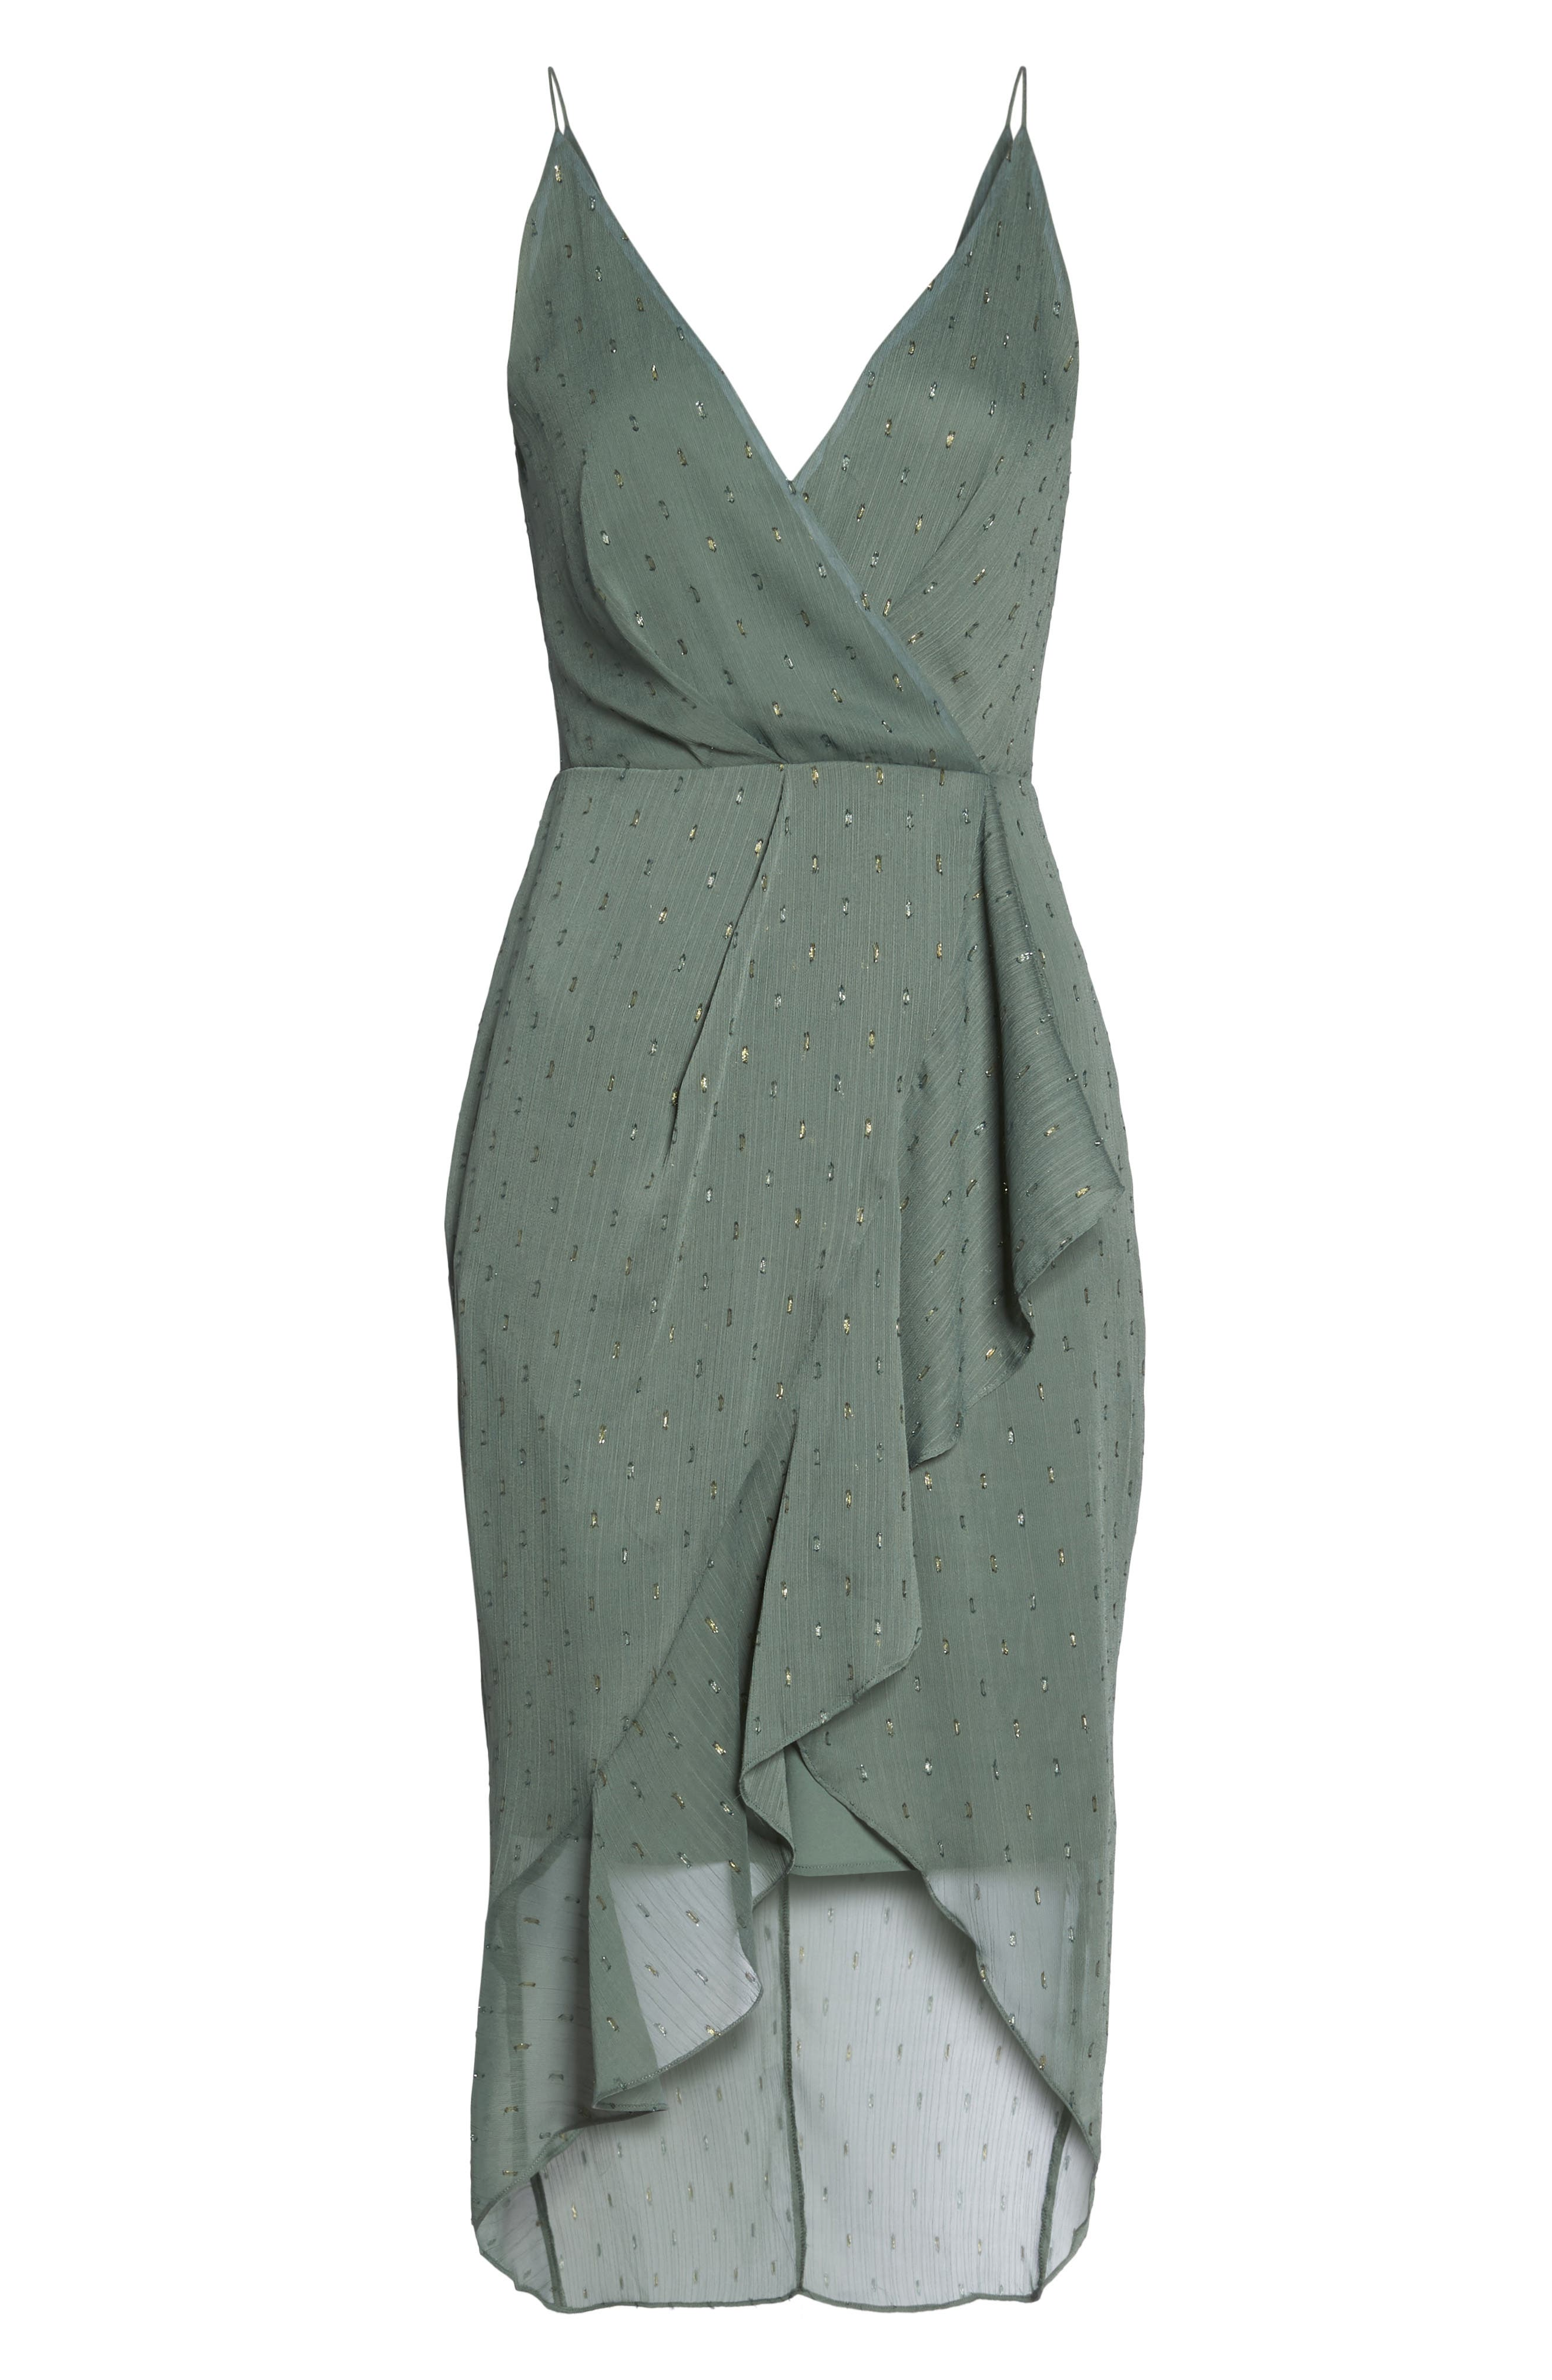 COOPER ST,                             Wind In The Willows Drape Dress,                             Alternate thumbnail 6, color,                             325